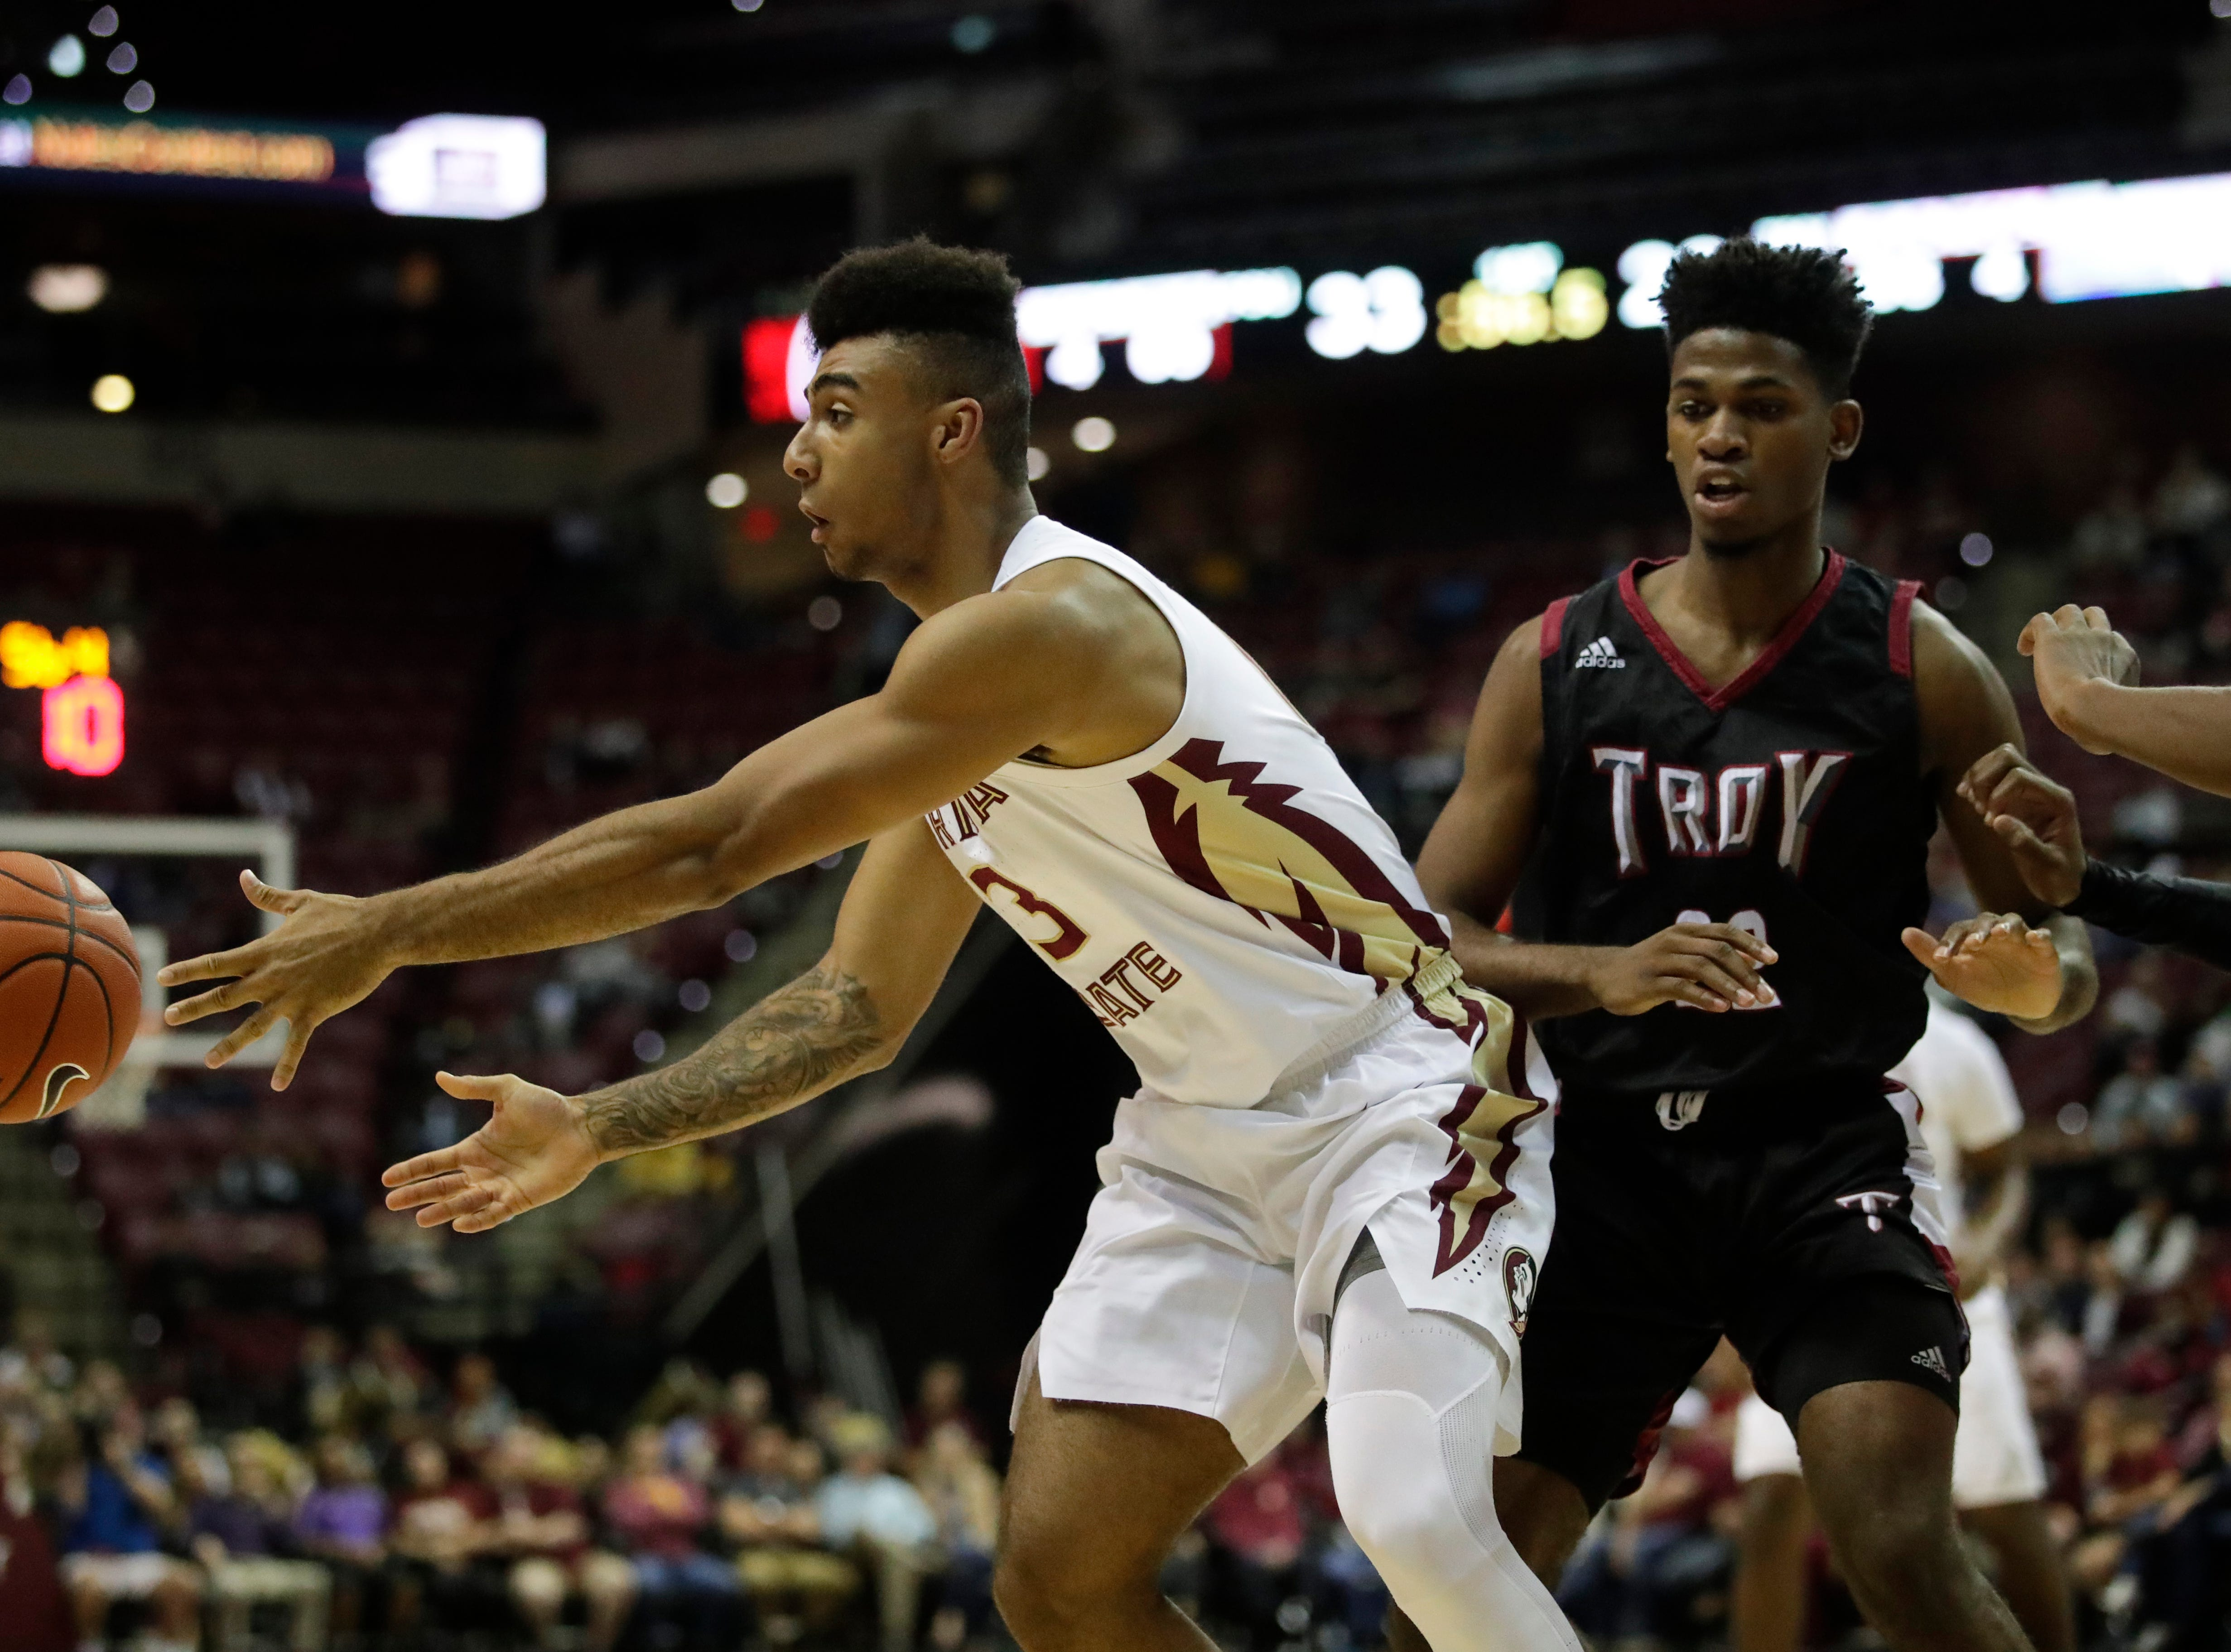 Florida State Seminoles guard Trent Forrest (3) passes the ball to a teammate during a game between FSU and Troy University at Donald L. Tucker Civic Center Monday, Dec. 3, 2018.